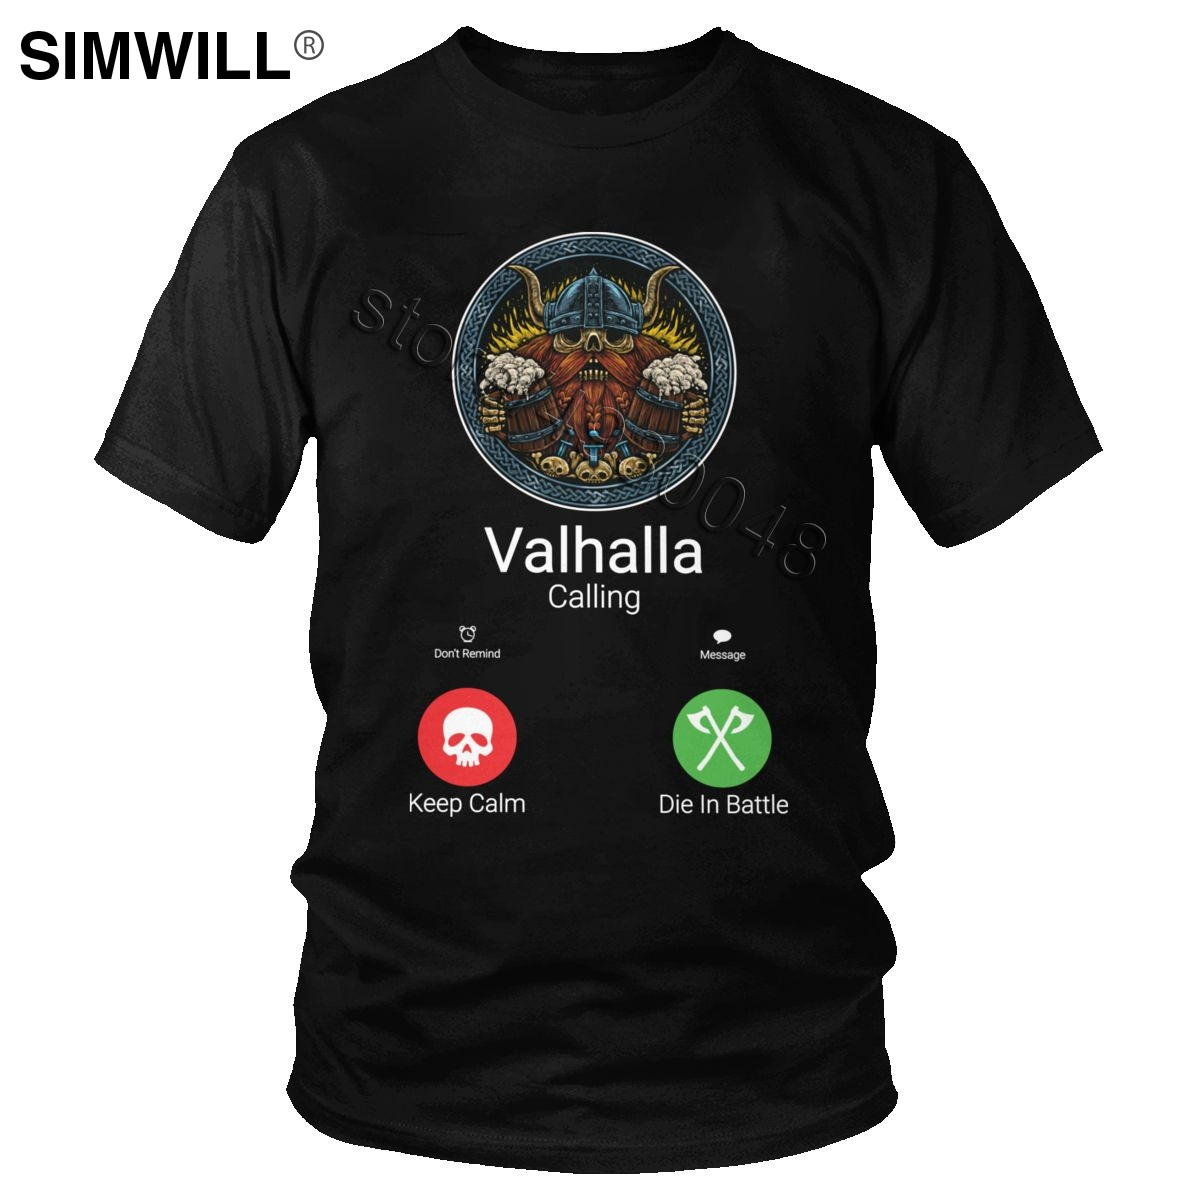 Novelty Men's Cotton Funny Valhalla Is Calling Shirt Short Sleeve Viking Odin Graphic T Shirt Streetwear Summer T-shirt Gift Tee